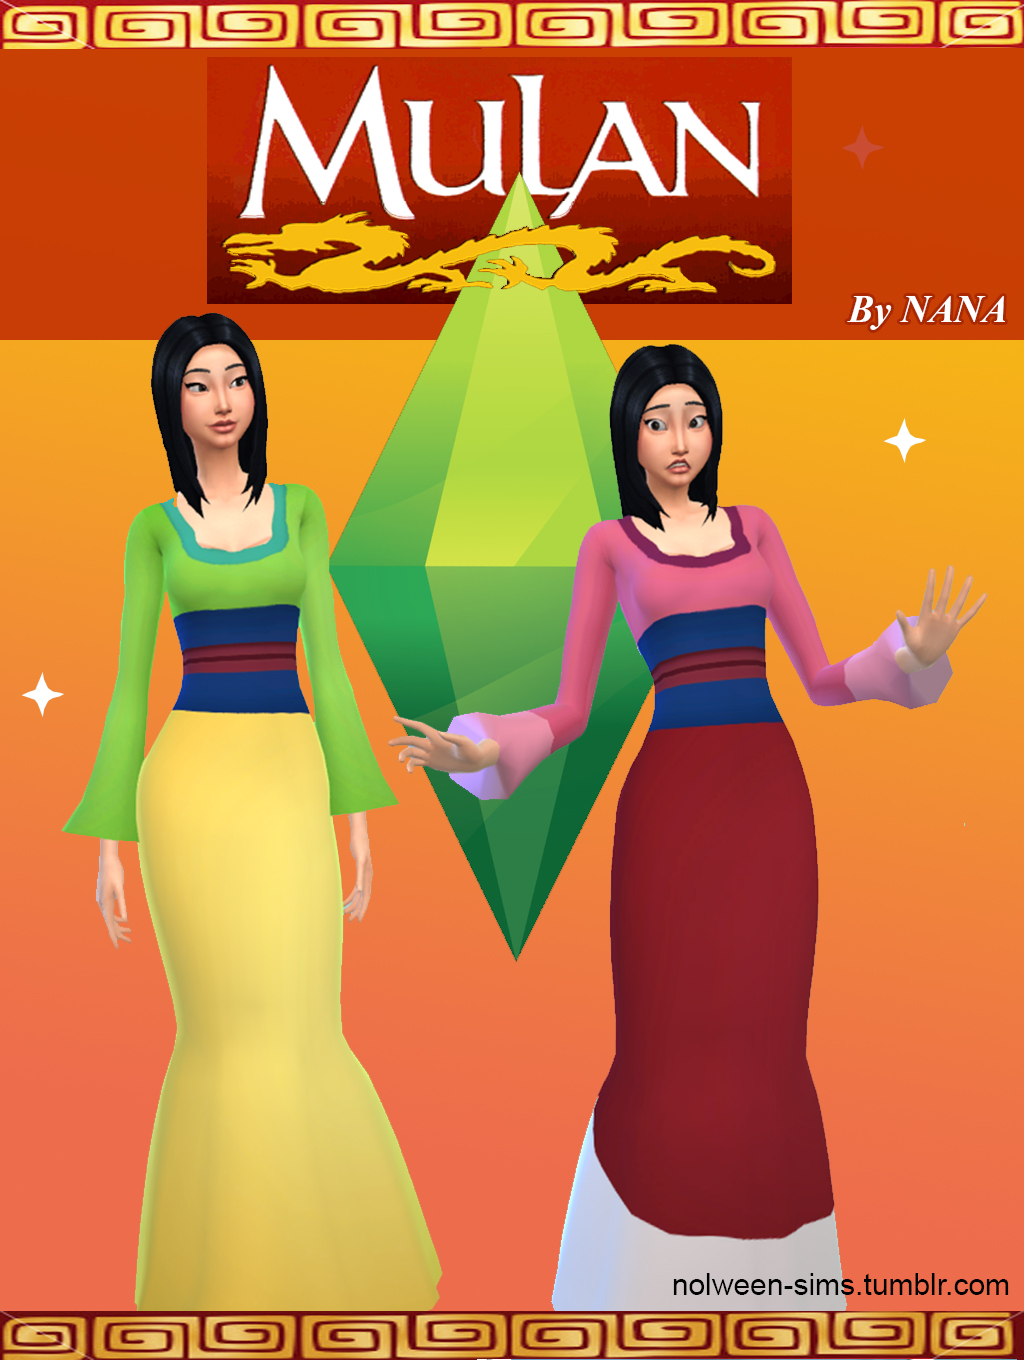 Mulan Dress by Nana